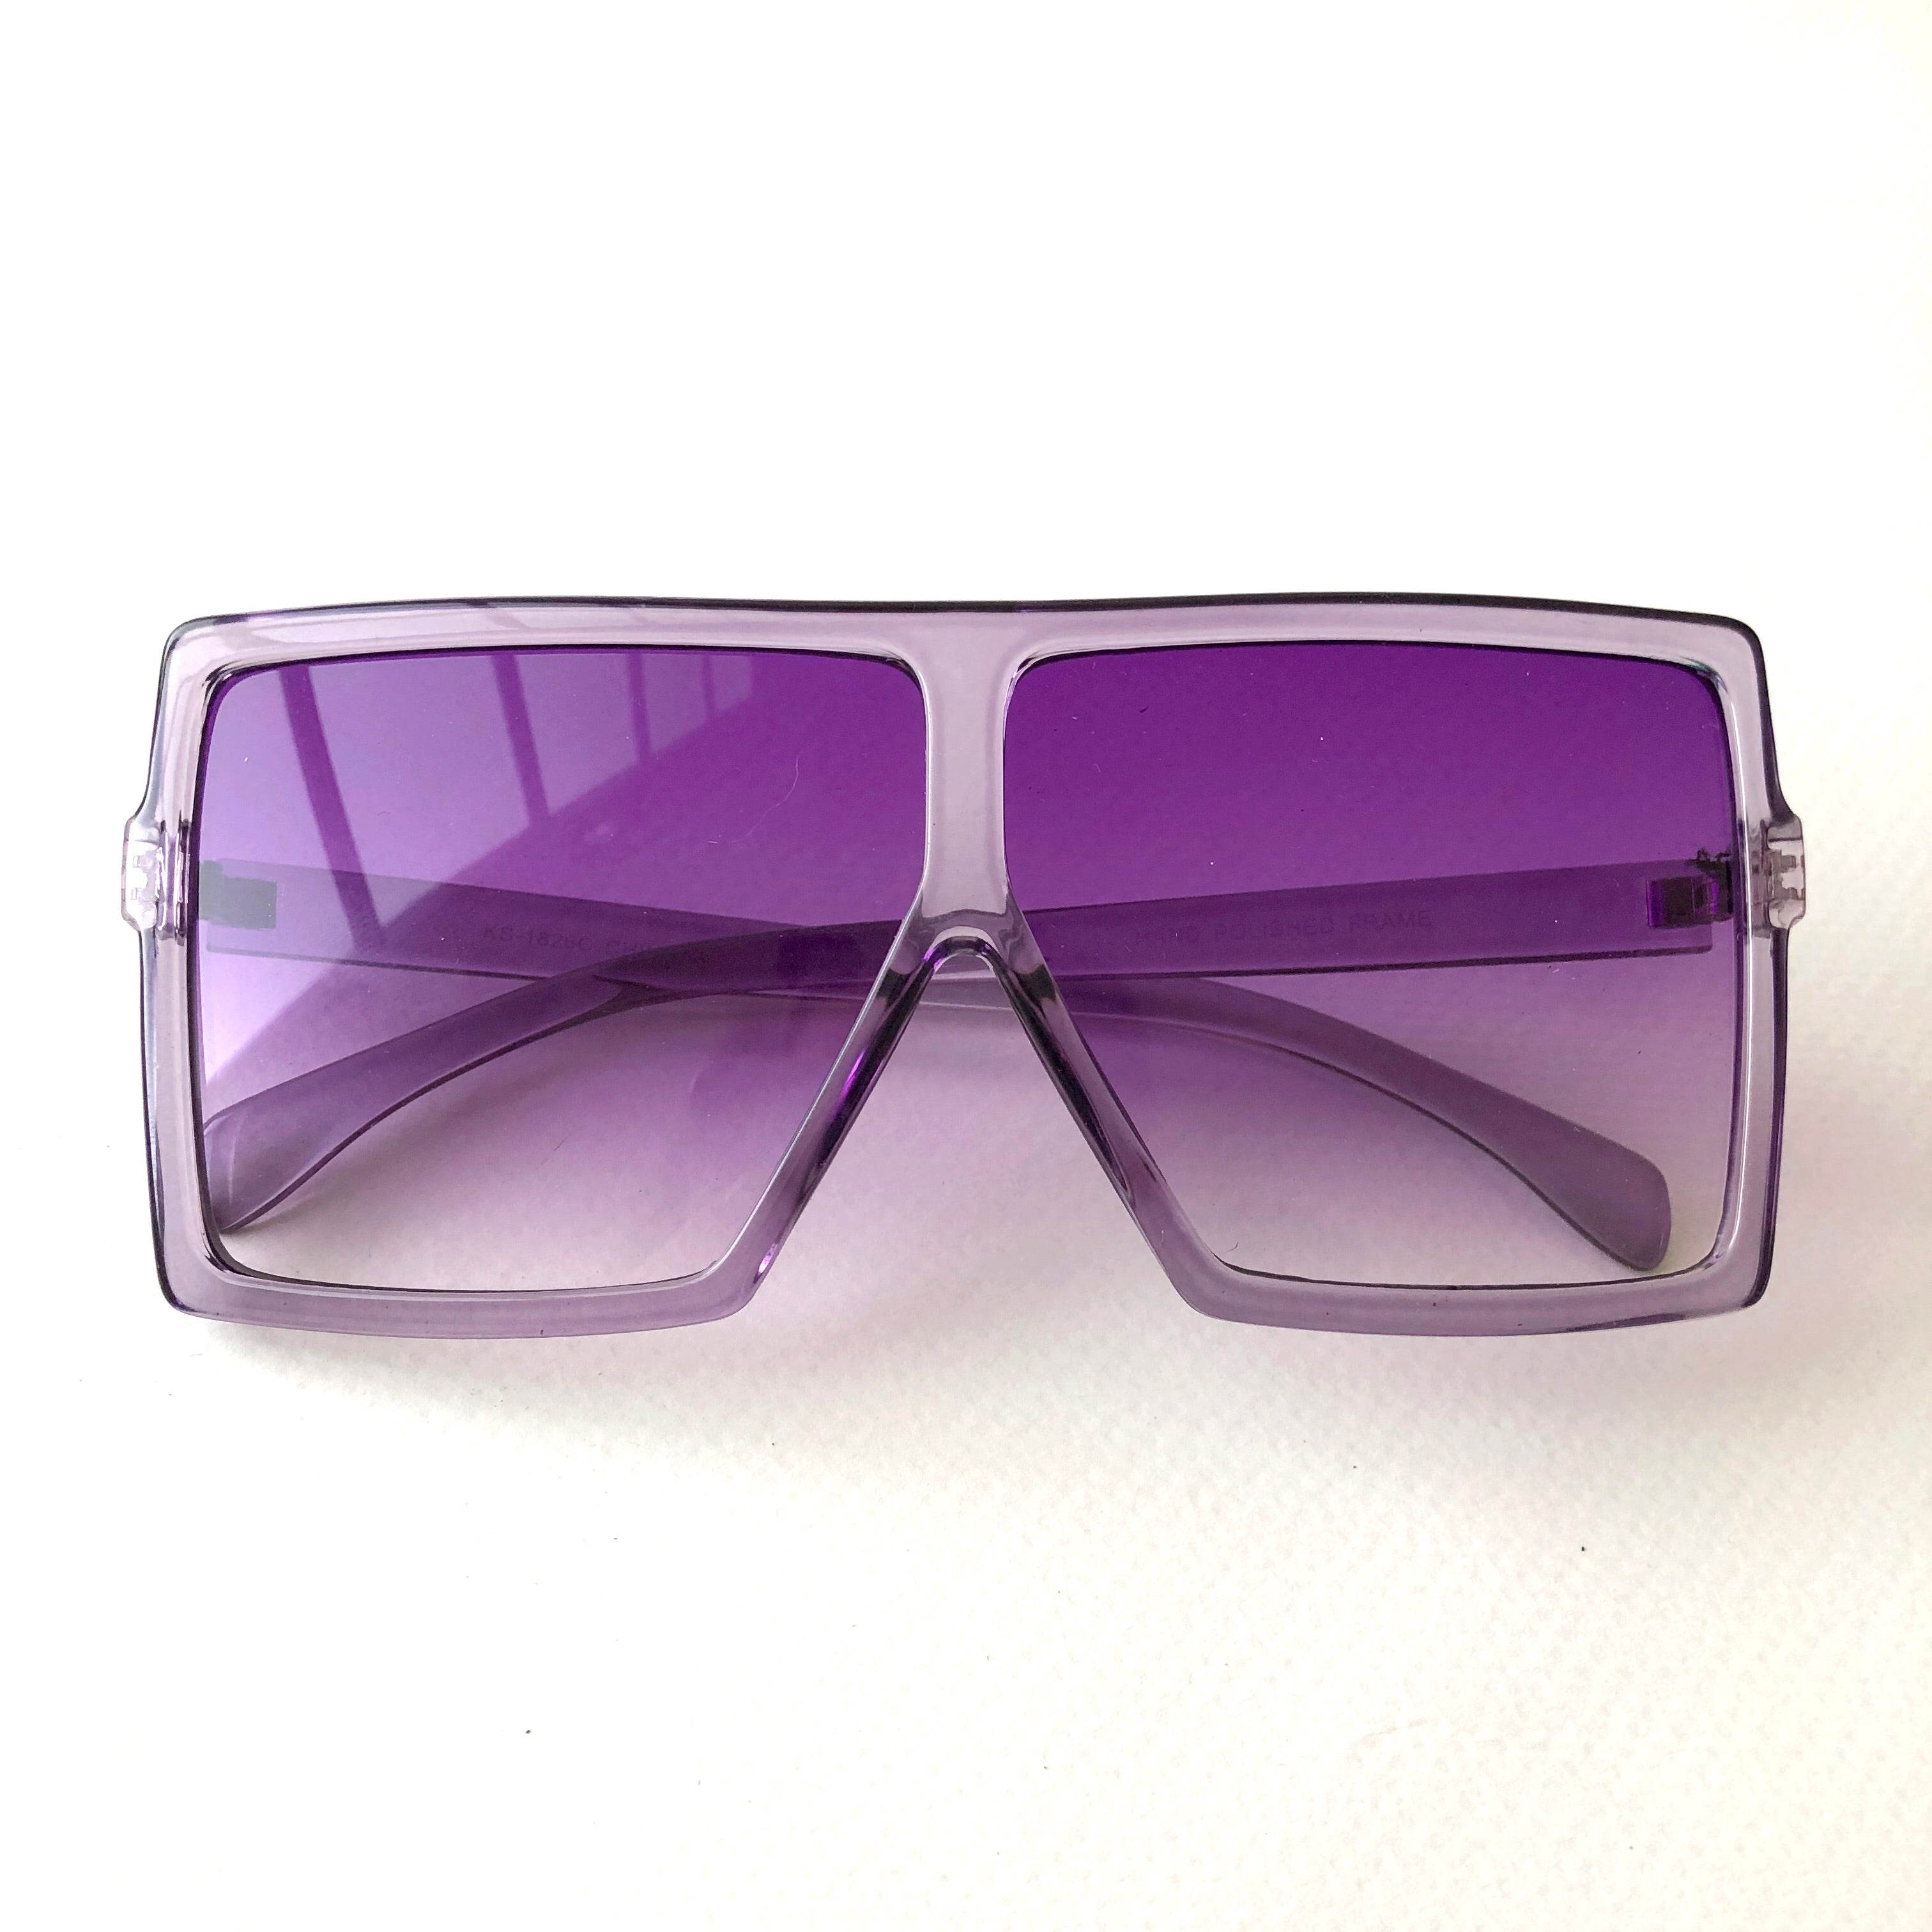 Purple square sunglasses